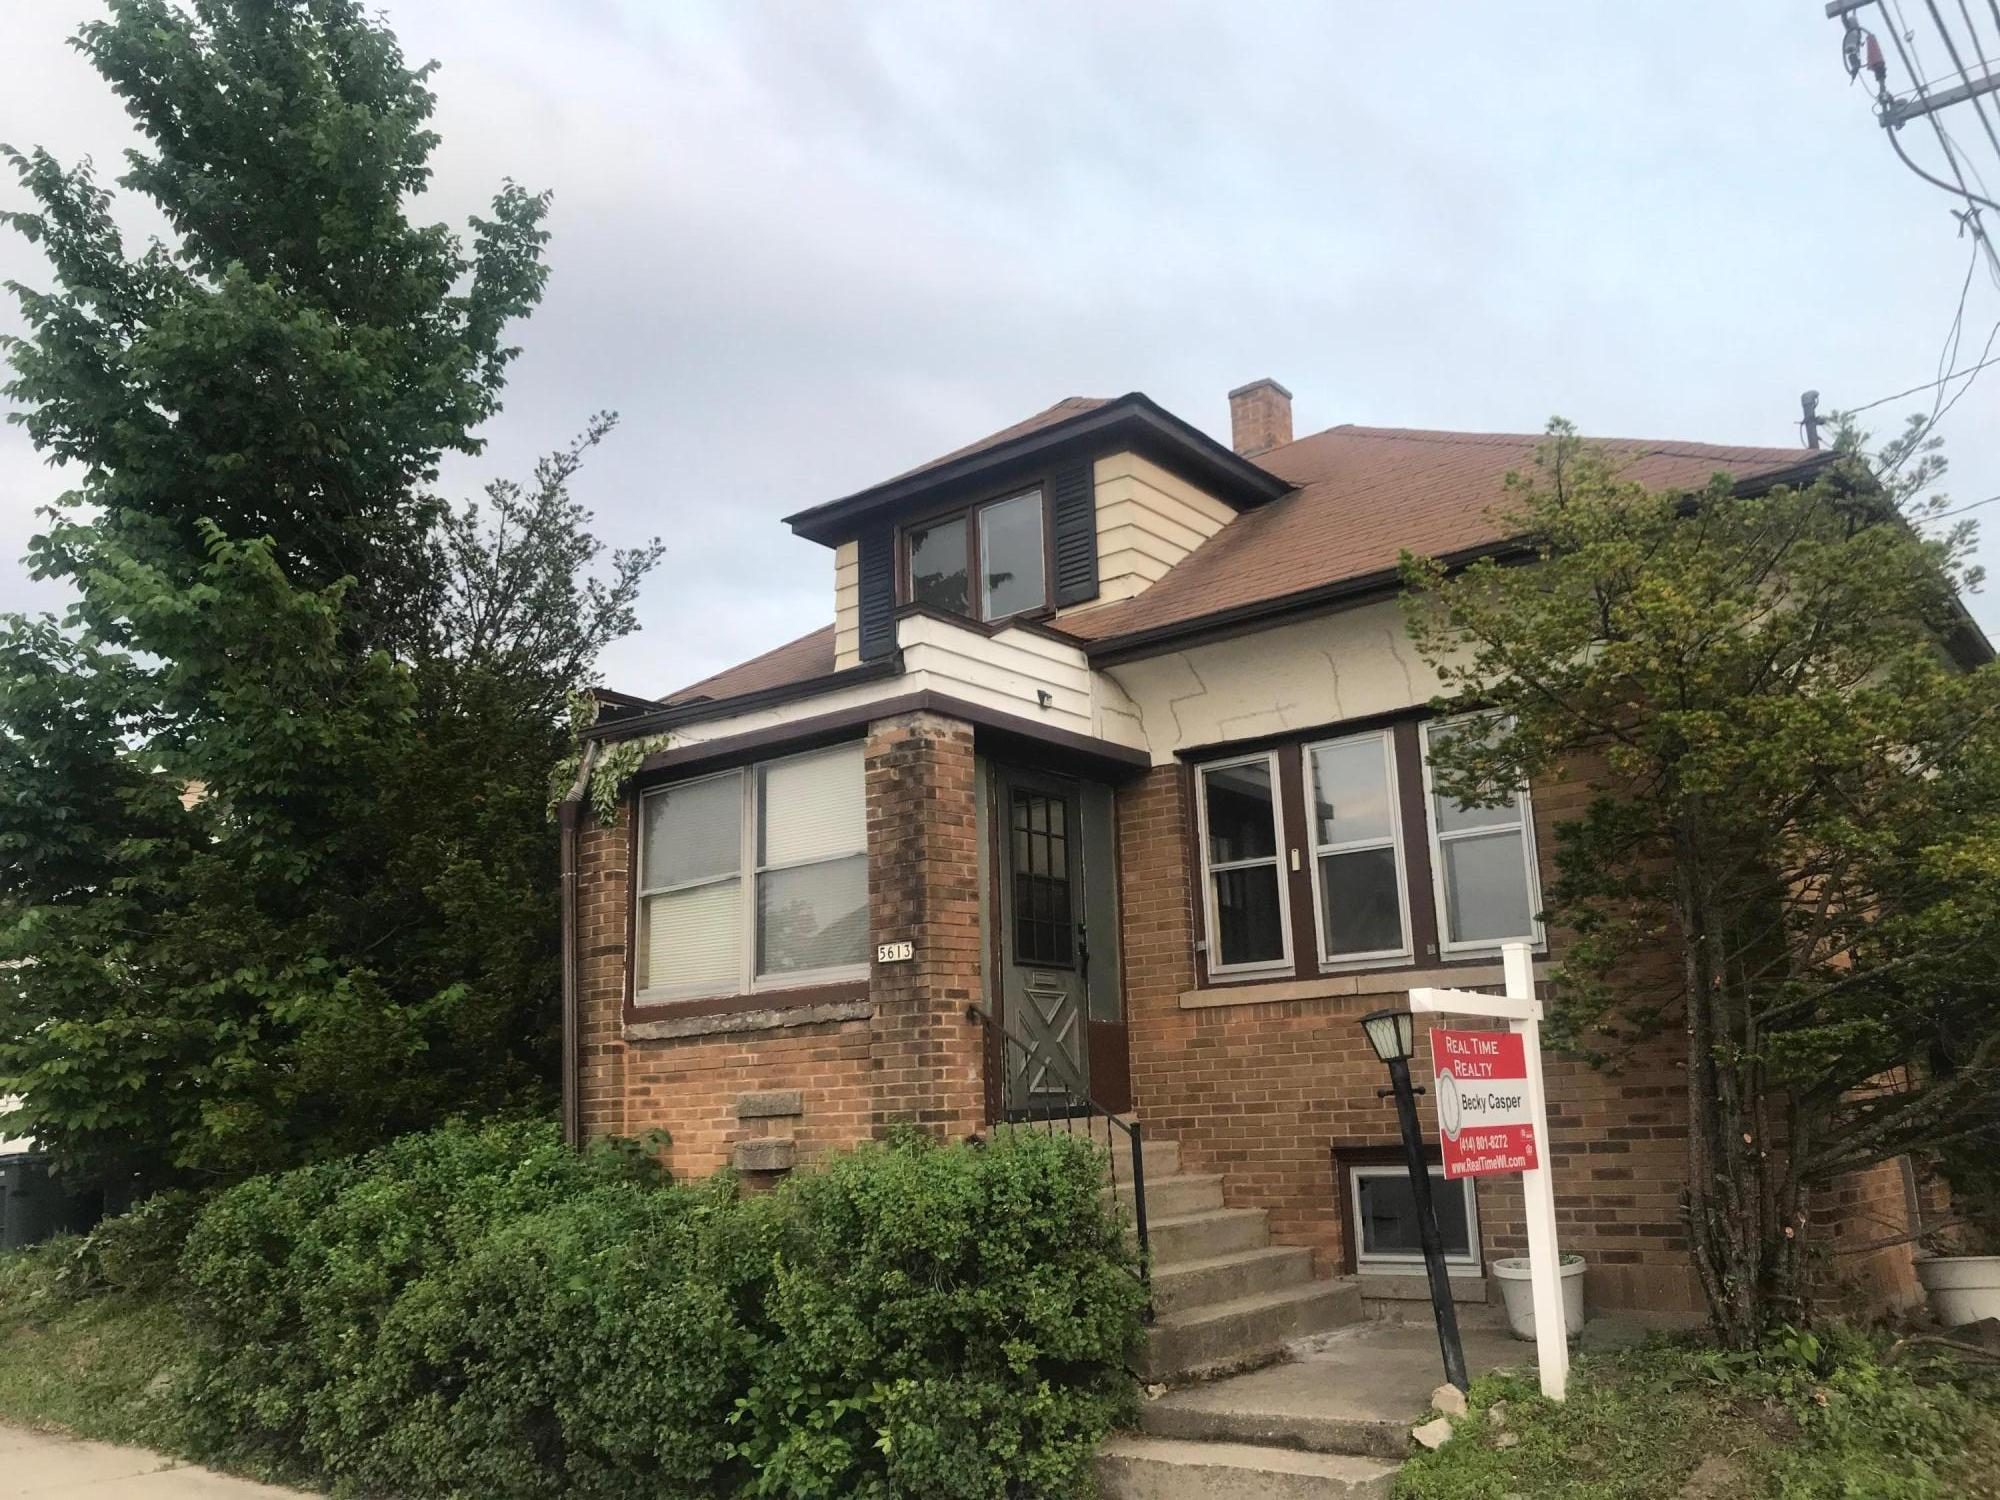 5613 Greenfield Ave, West Allis, Wisconsin 53214, 3 Bedrooms Bedrooms, ,1 BathroomBathrooms,Single-Family,For Sale,Greenfield Ave,1643522